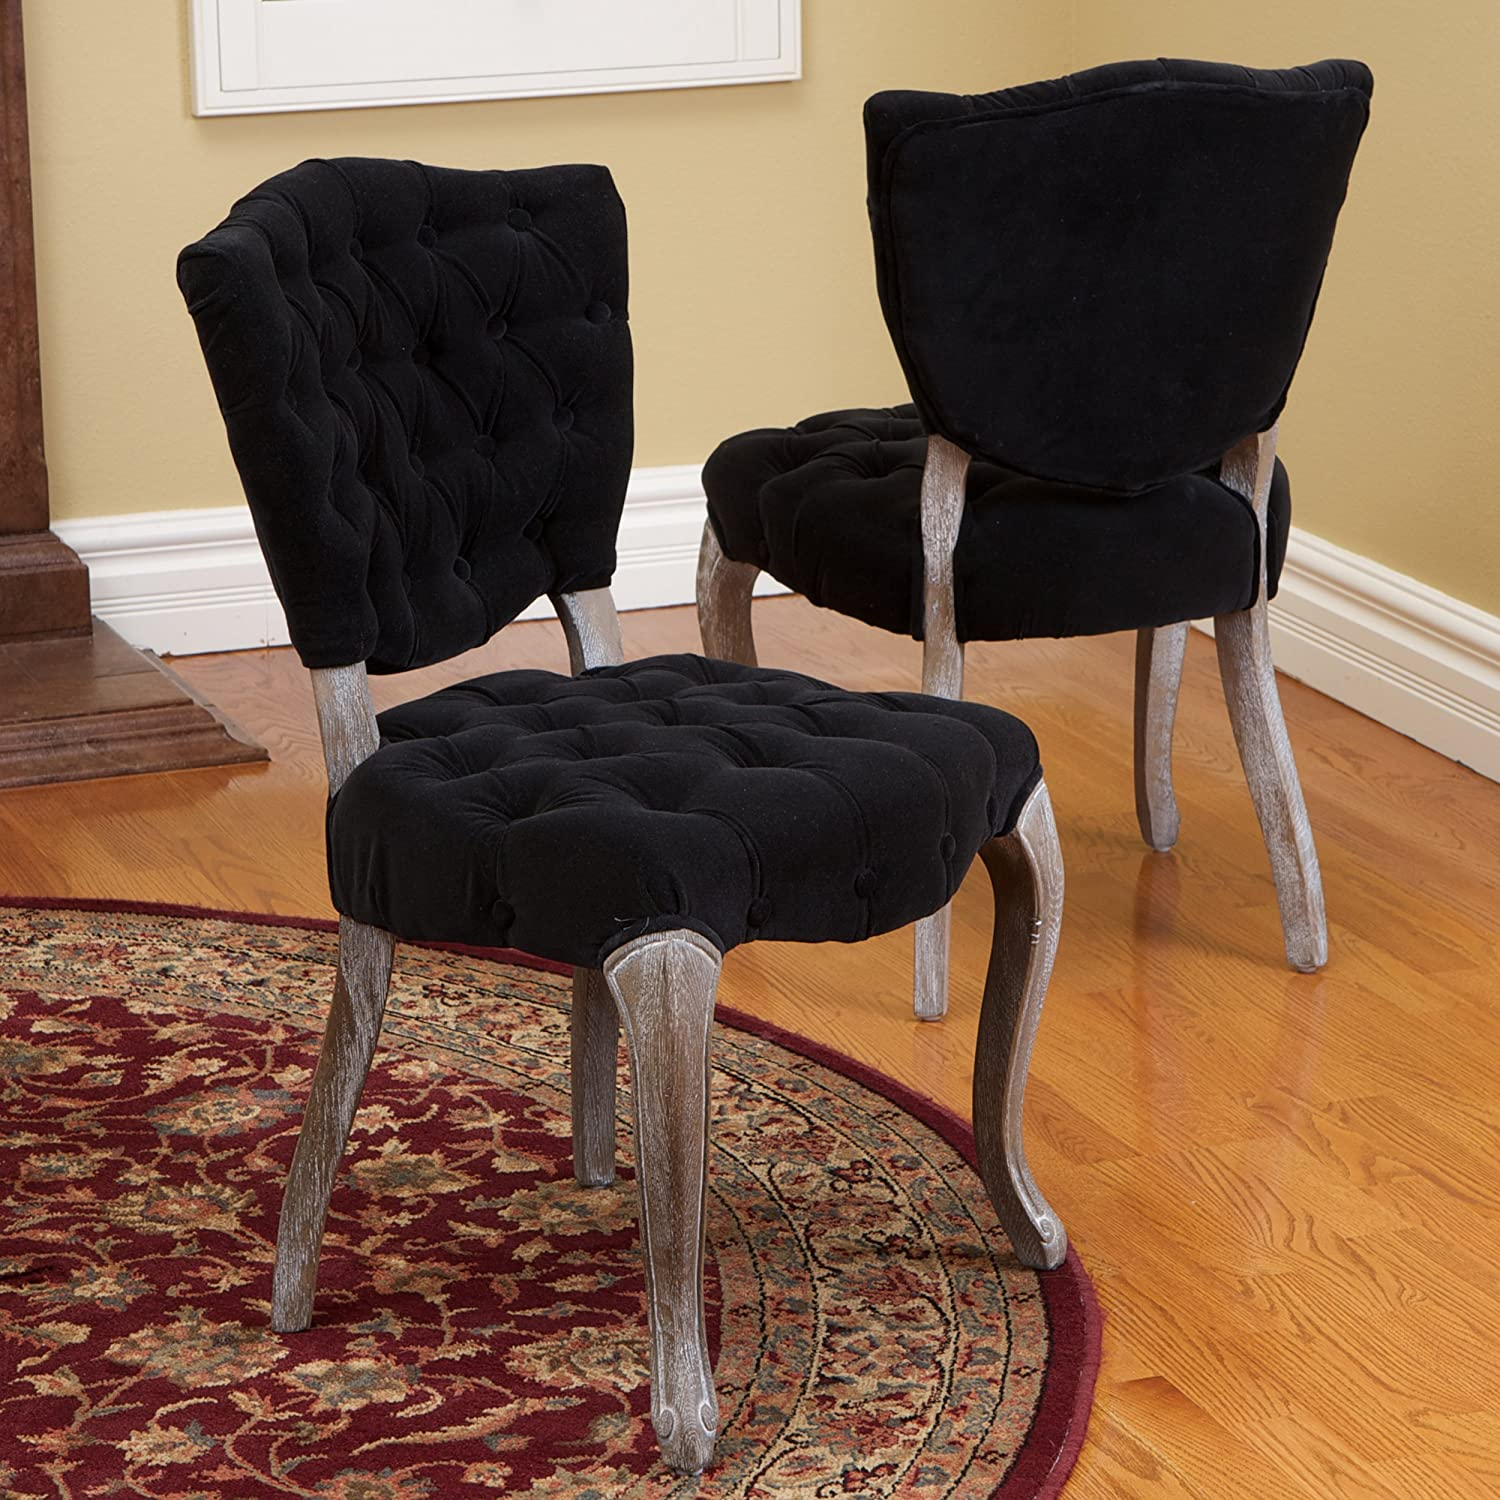 Amazon Violetta Tufted Black Fabric Dining Chairs Set of 2